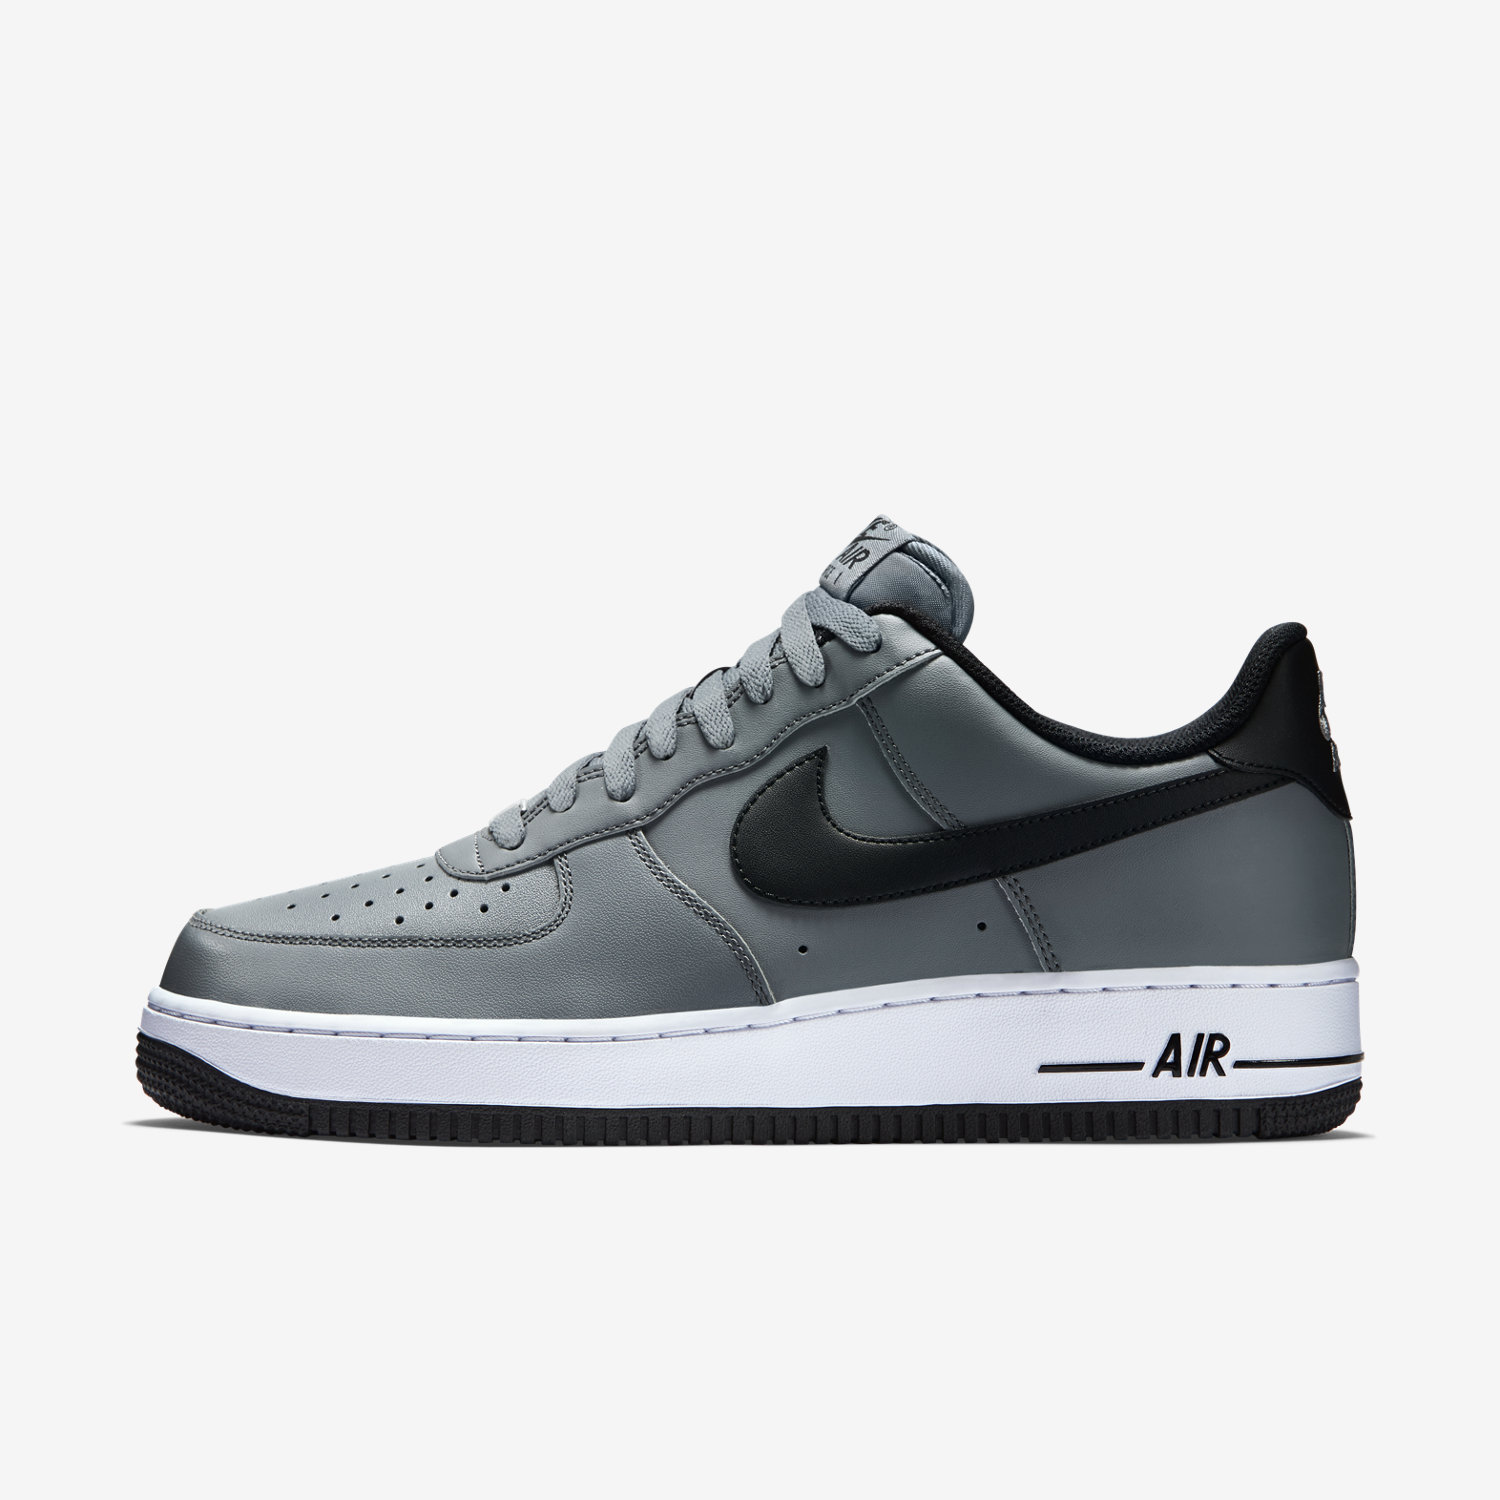 Air Force 1 Shoes 2016